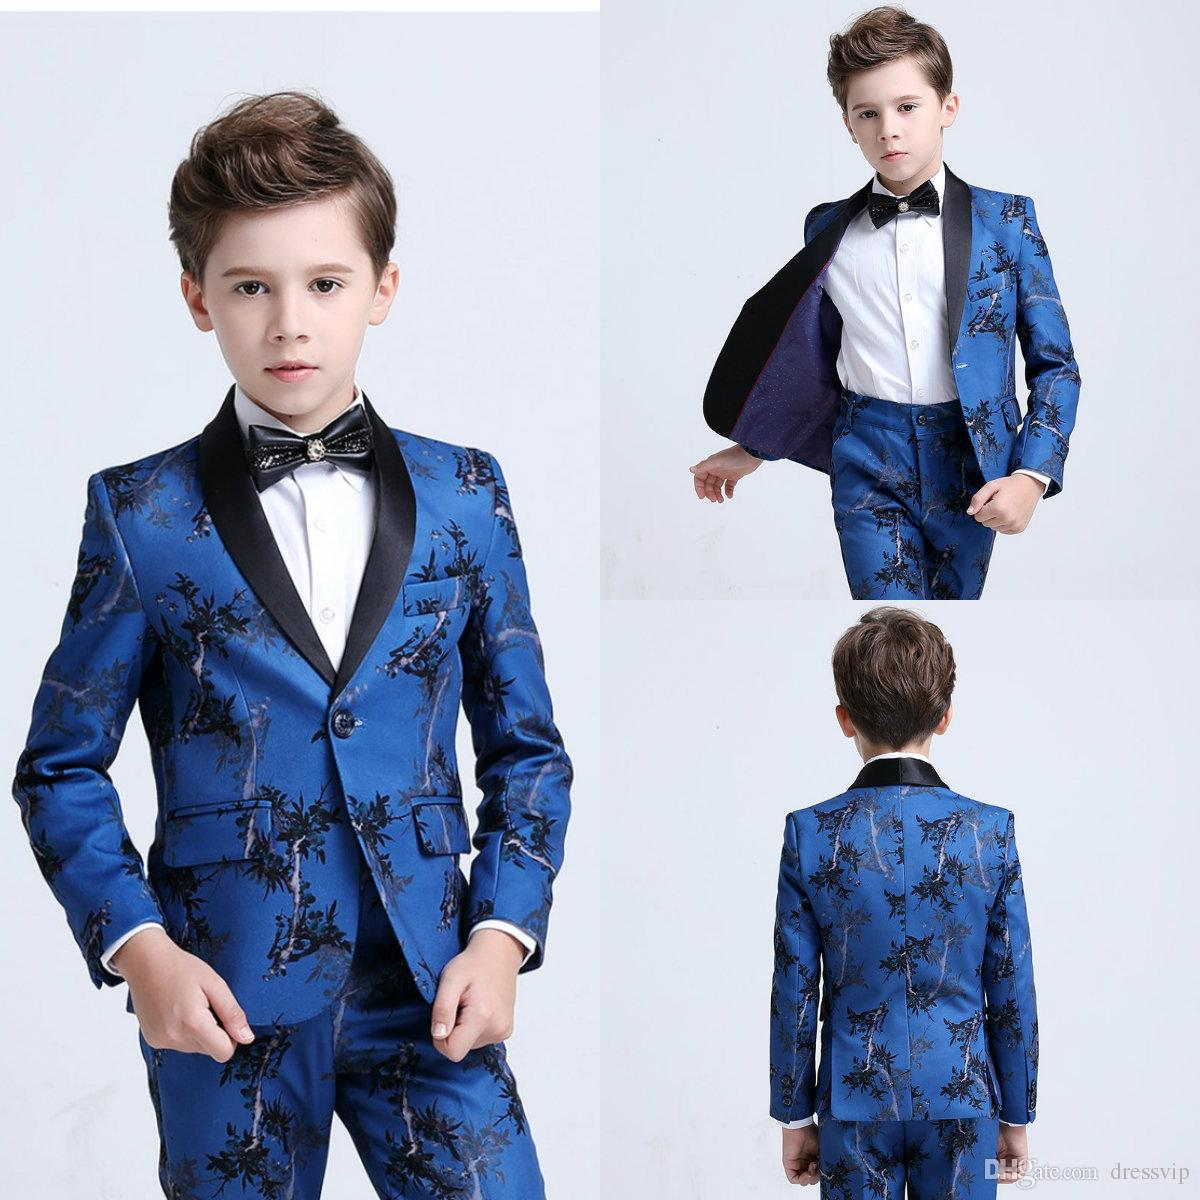 Boys Tuxedo Boys Dinner Suits Boys Formal Suits Tuxedo for Kids Tuxedo Formal Occasion Floral Print Suits For Little Men Three Pieces